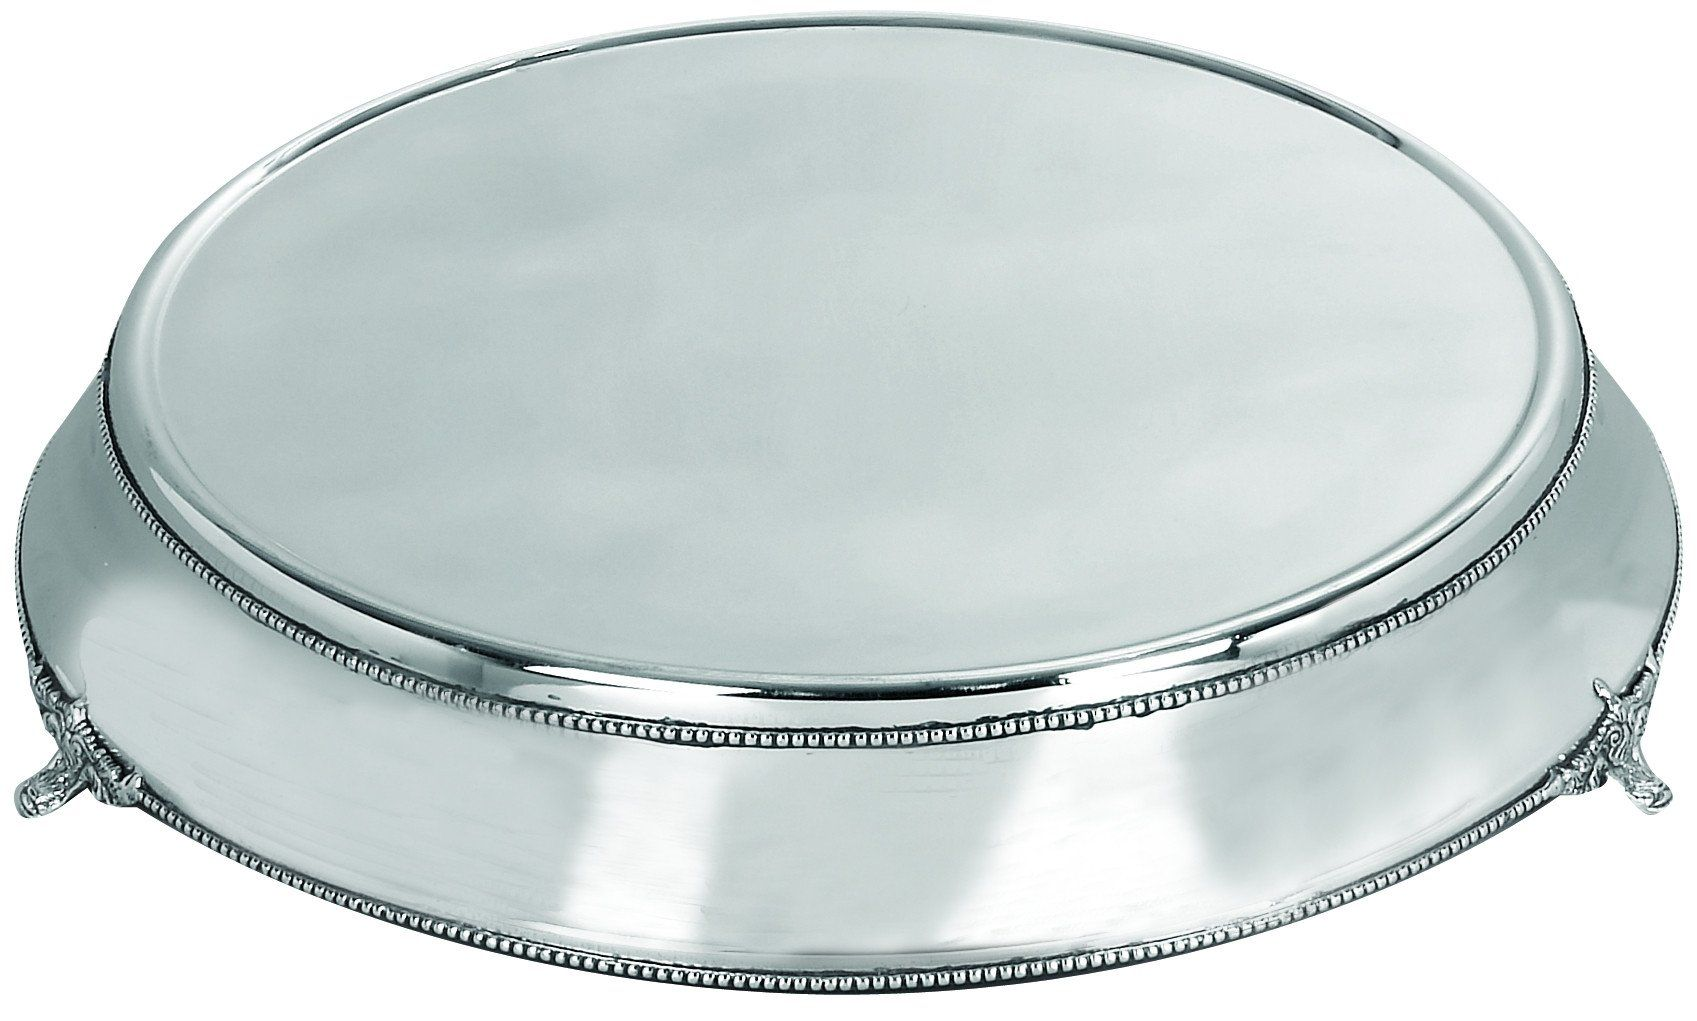 Stainless steel cake plate with silver color